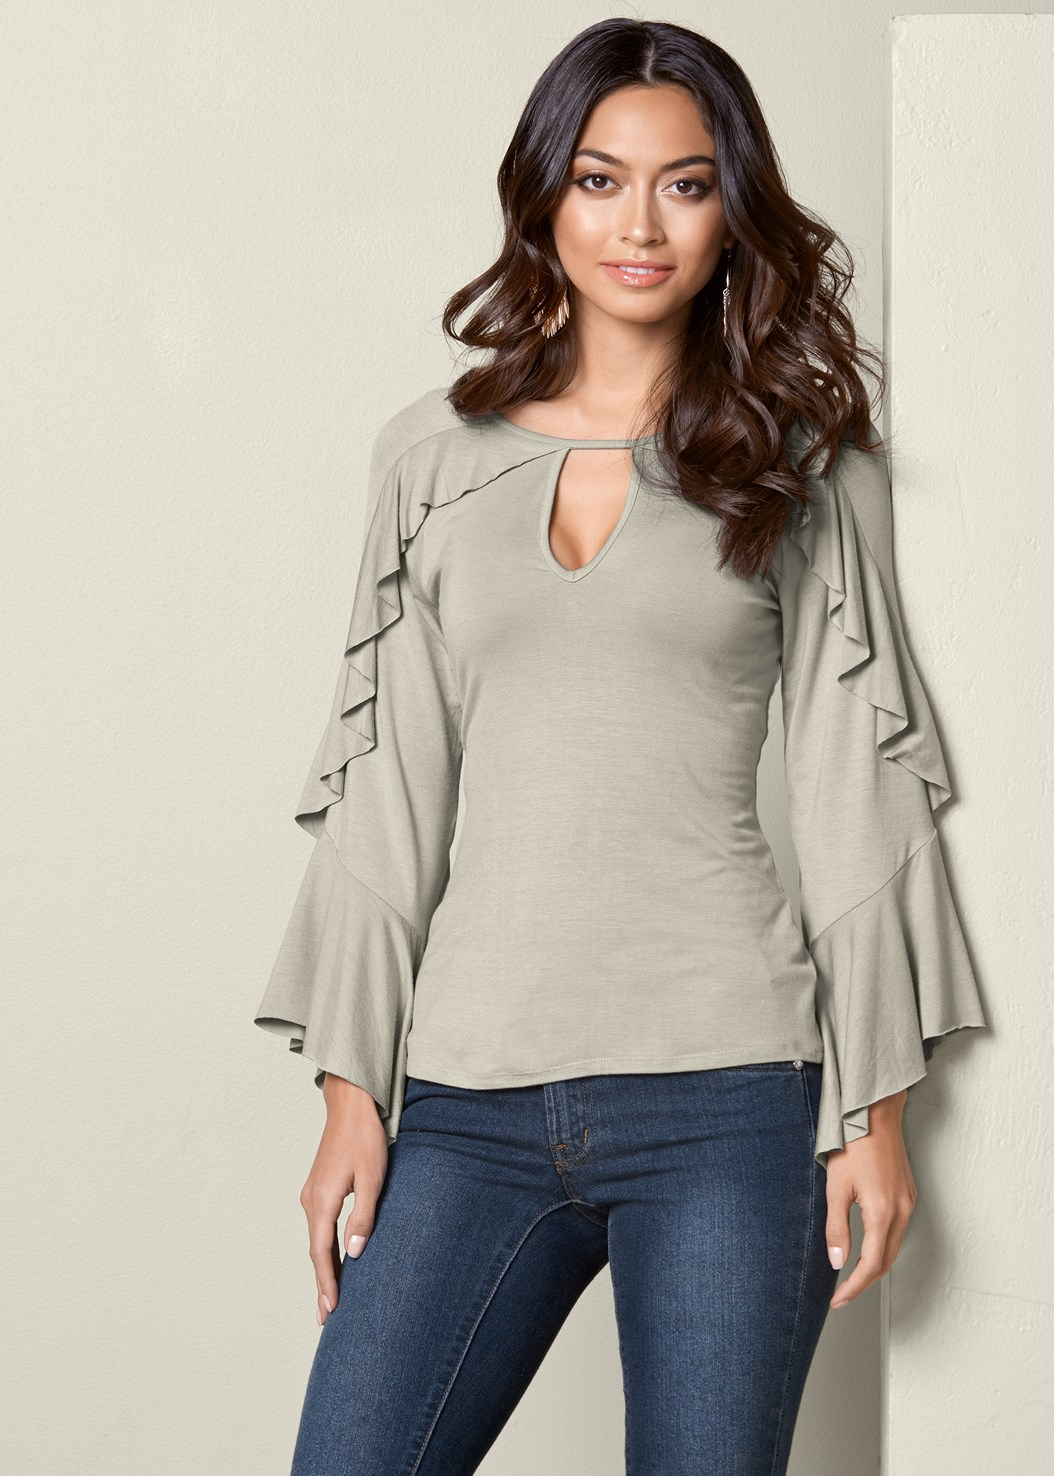 Ruffle Detail Top,Mid Rise Color Skinny Jeans